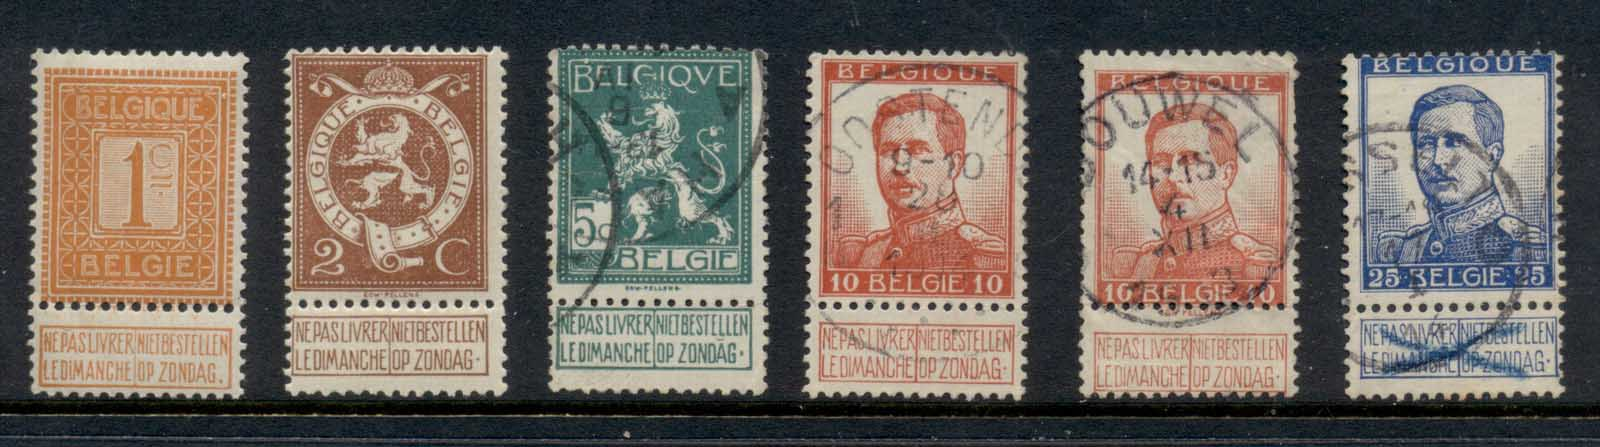 Belgium 1912-13 King Albert I, Lion Asst MLH/FU